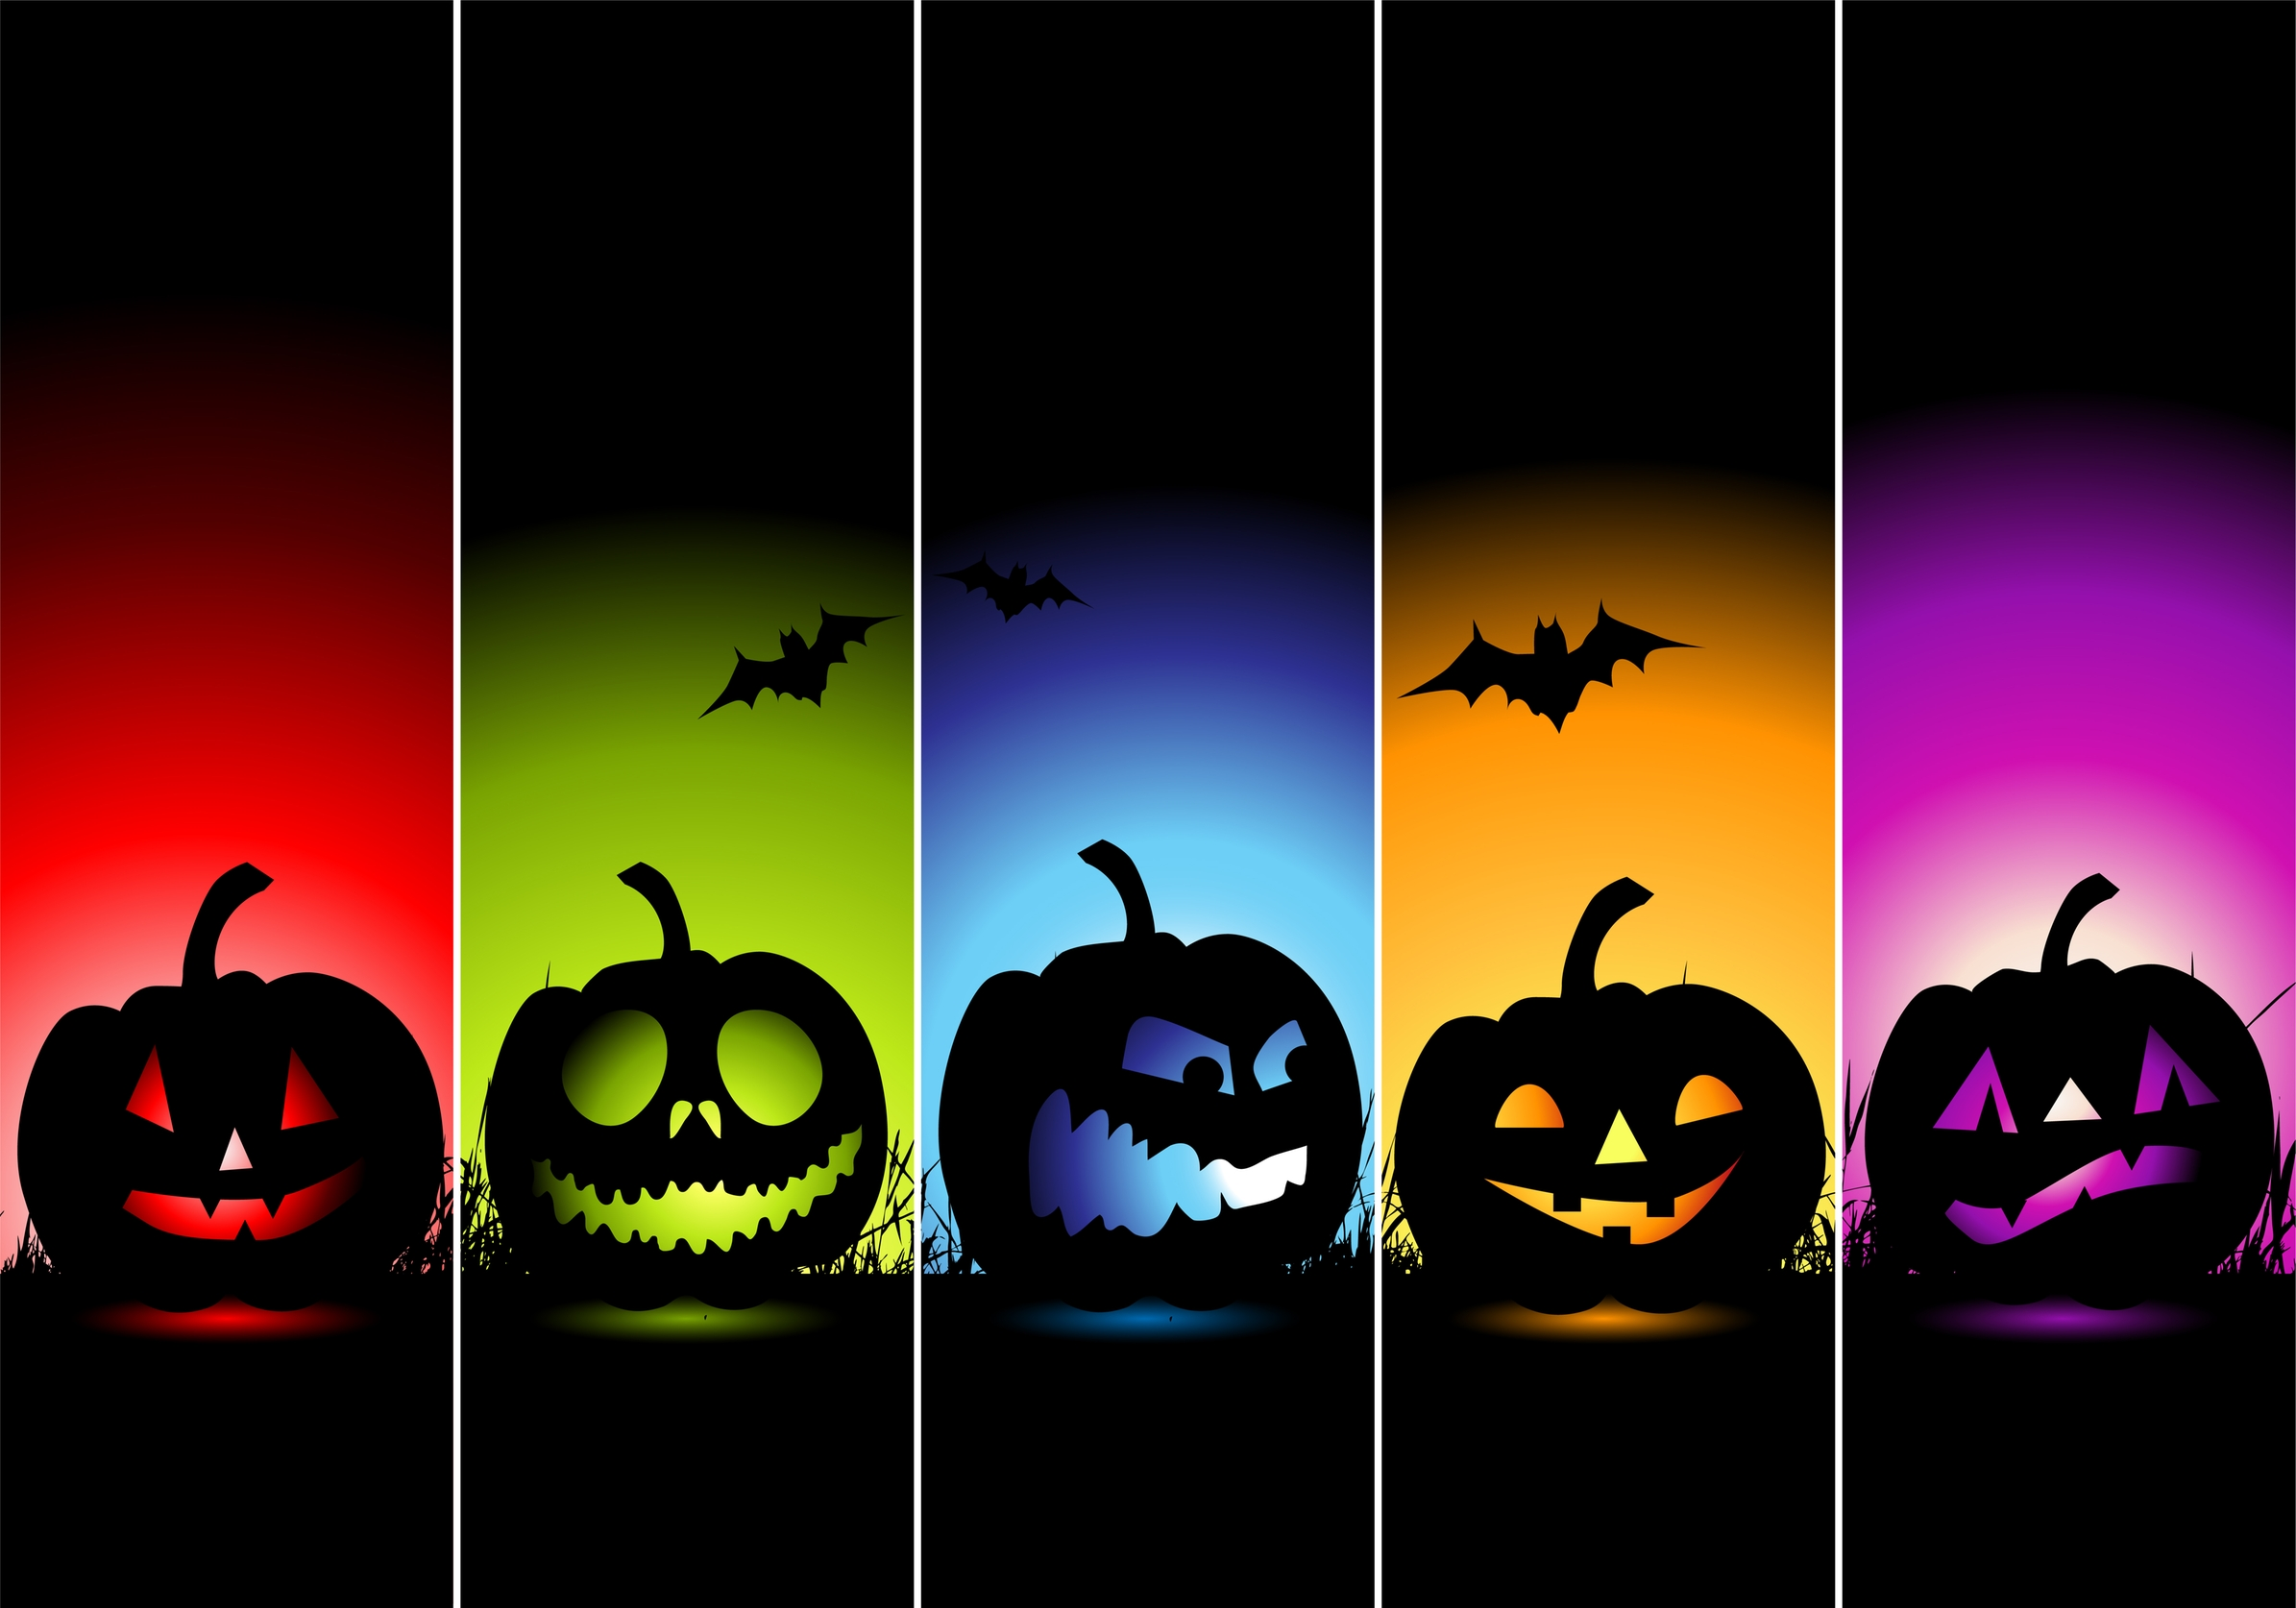 Colorful Halloween Horor Wallpaper.